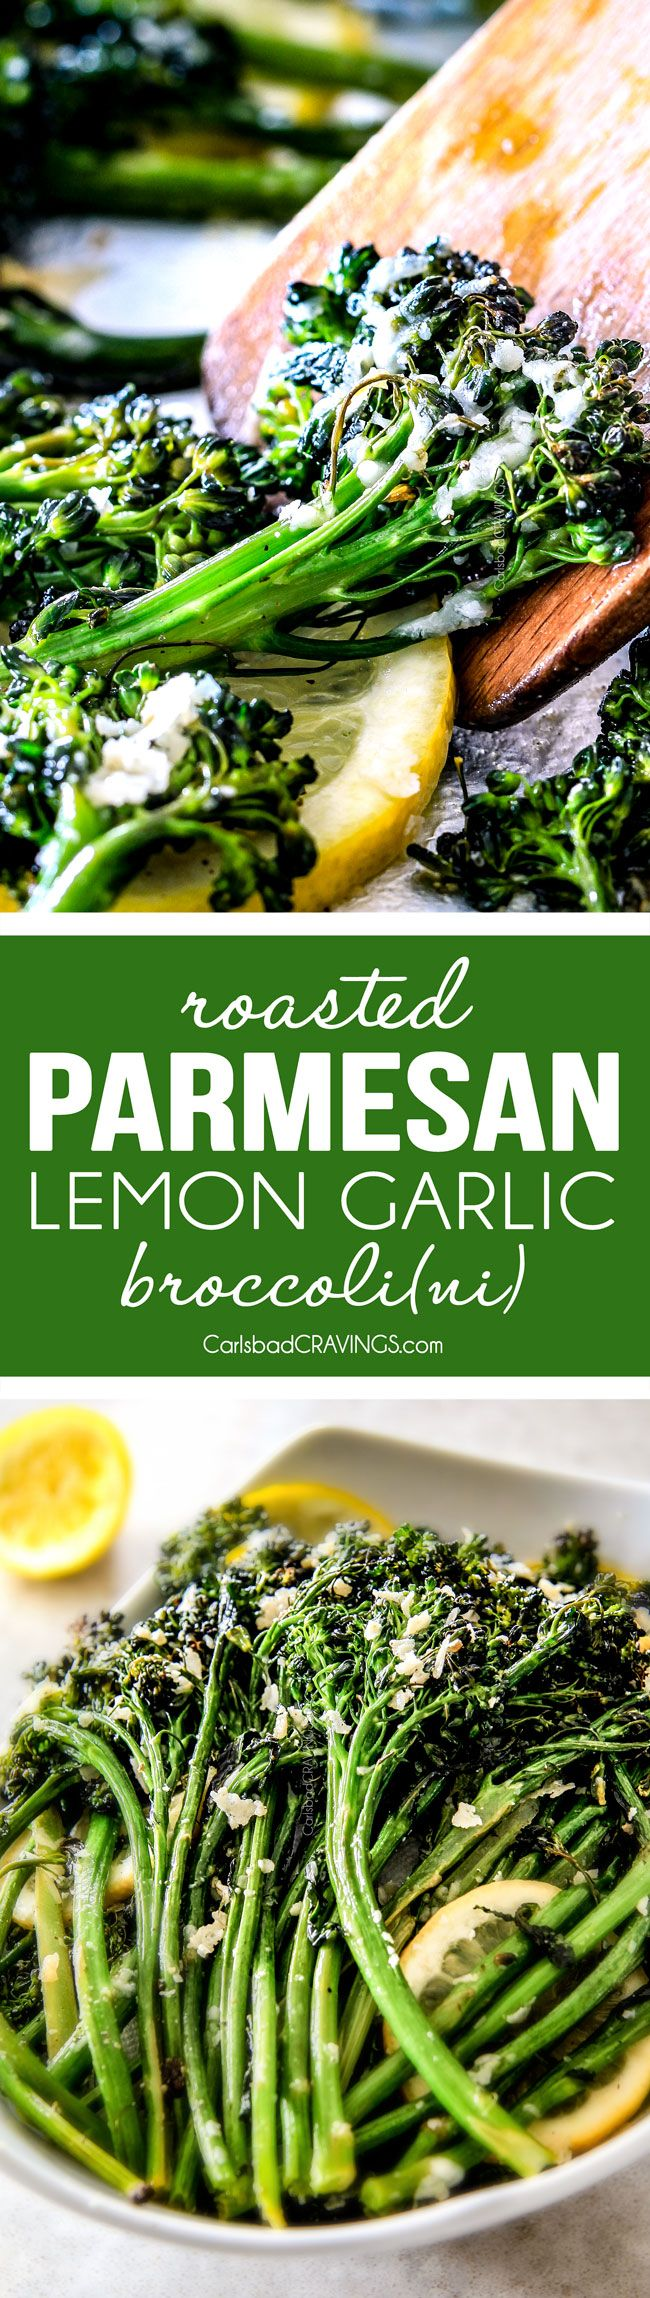 Roasted Parmesan Lemon Garlic Broccoli (or Broccolini) is bursting with flavor, caramelized edges and the easiest side dish to every meal all made in one pan!